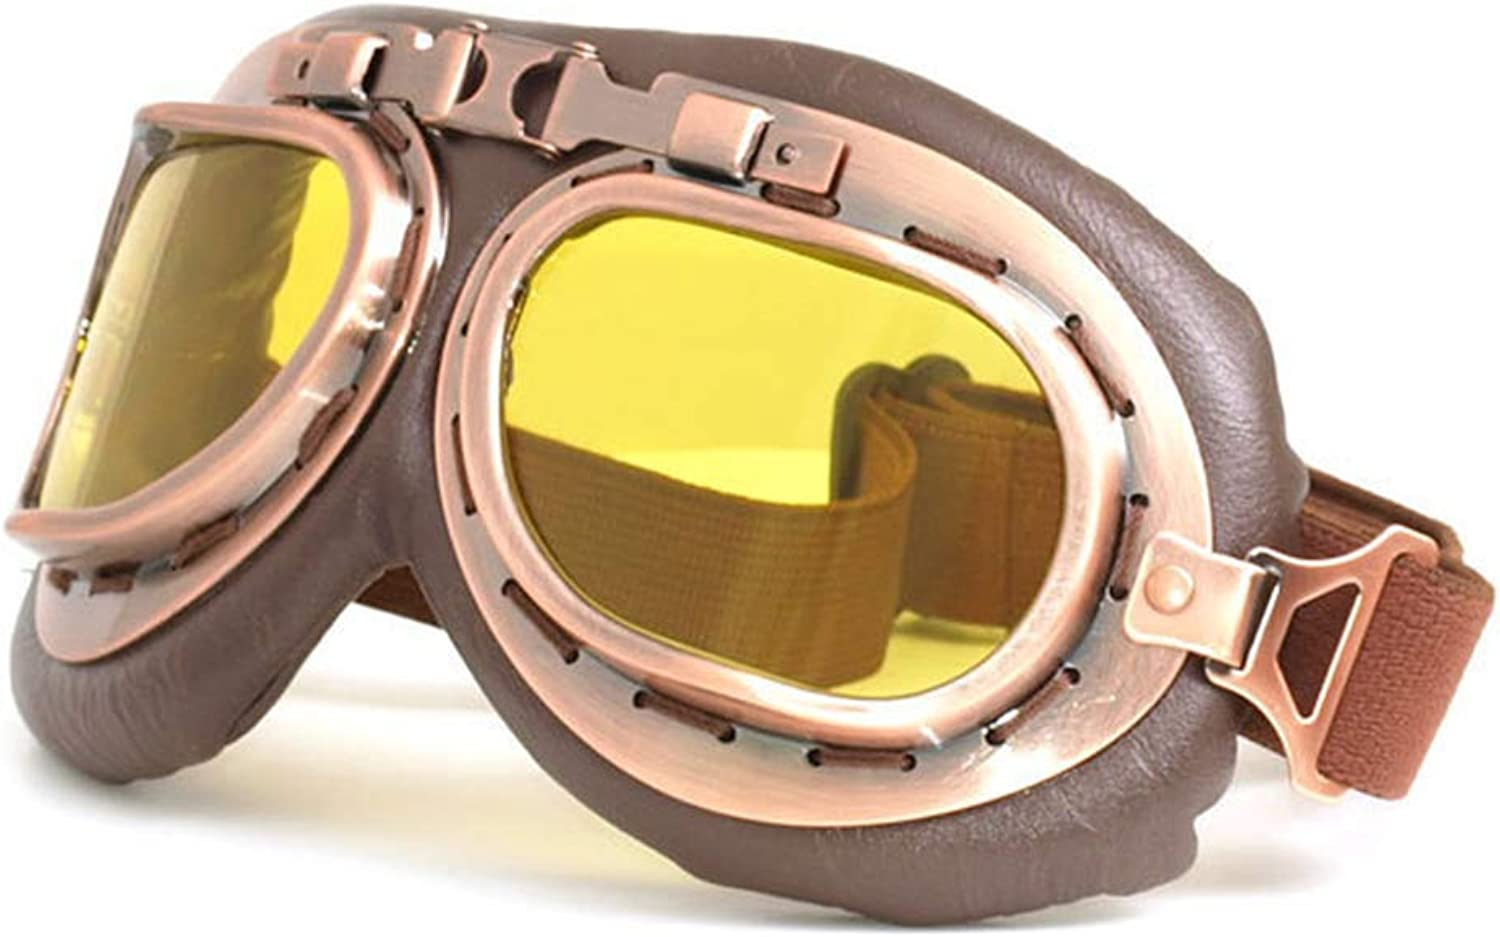 Motorcycle Glasses Riding Goggles Motorcycle Helmet mask Outdoor Locomotive OffRoad Windproof Glasses